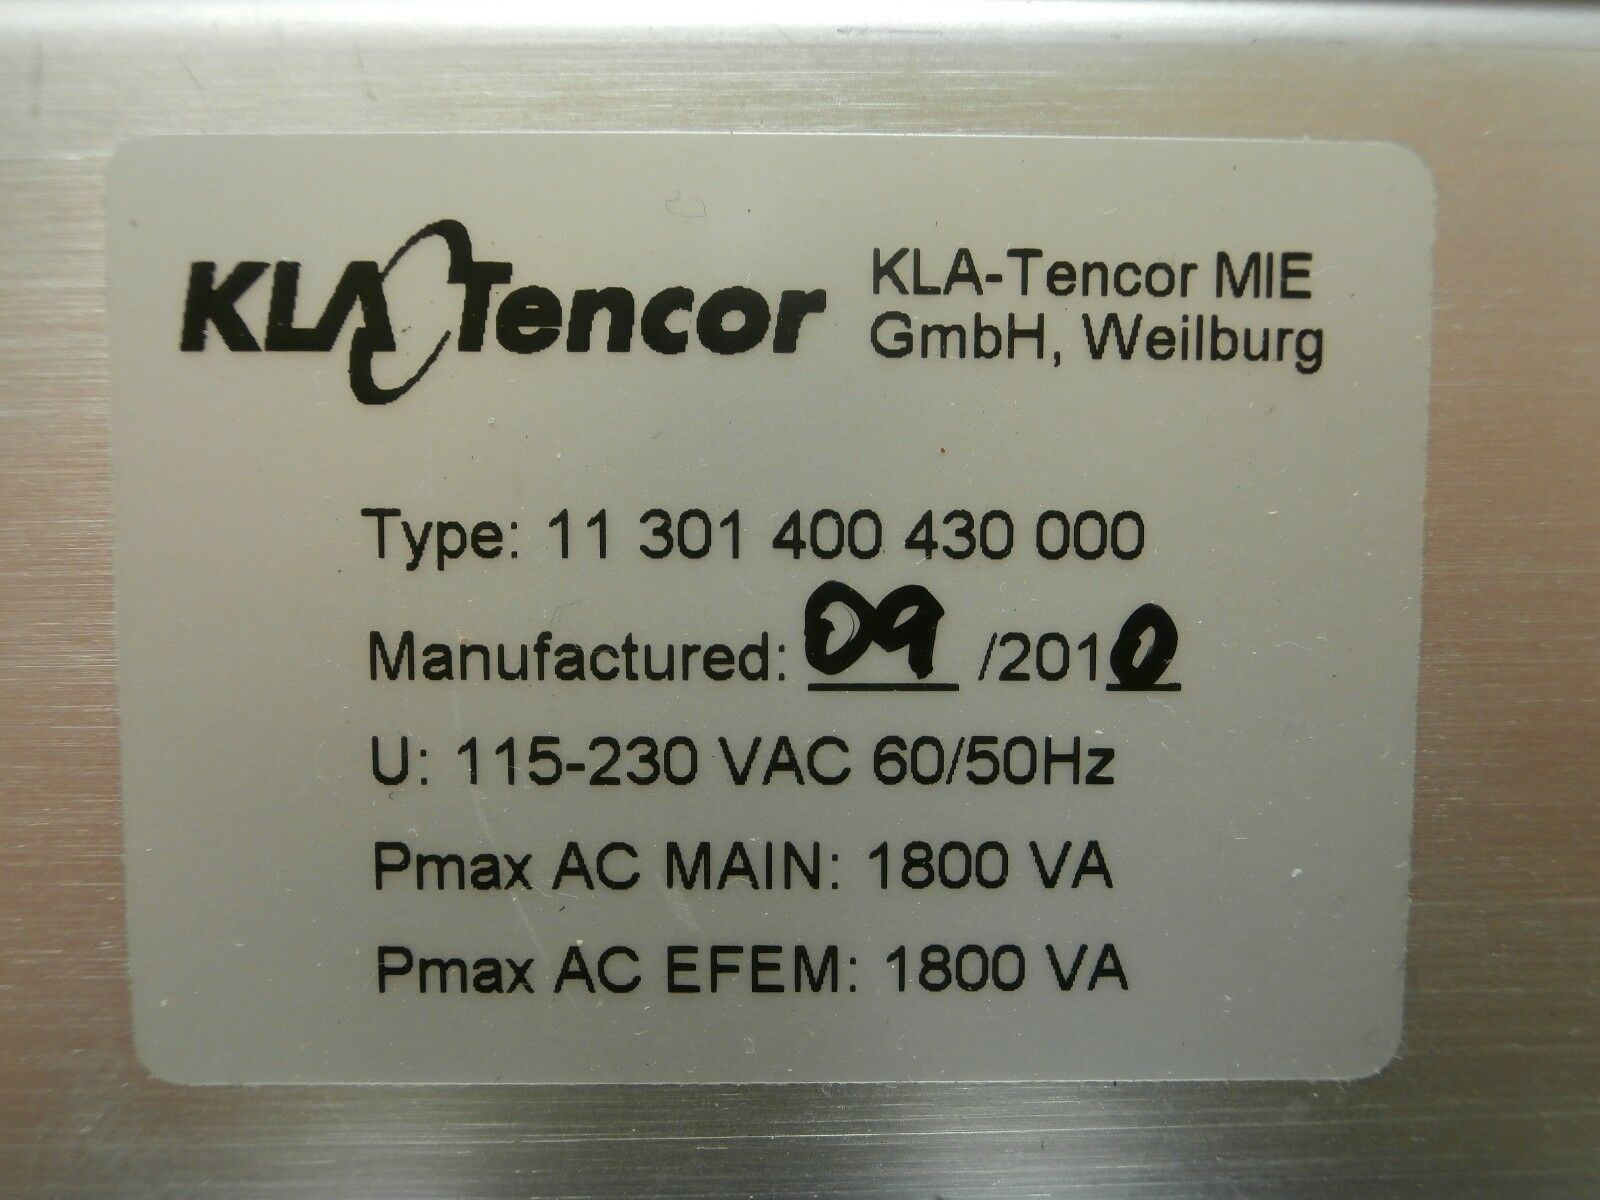 KLA-Tencor 11301400430000 NG Power Supply Unit 11 301 400 430 000 Used